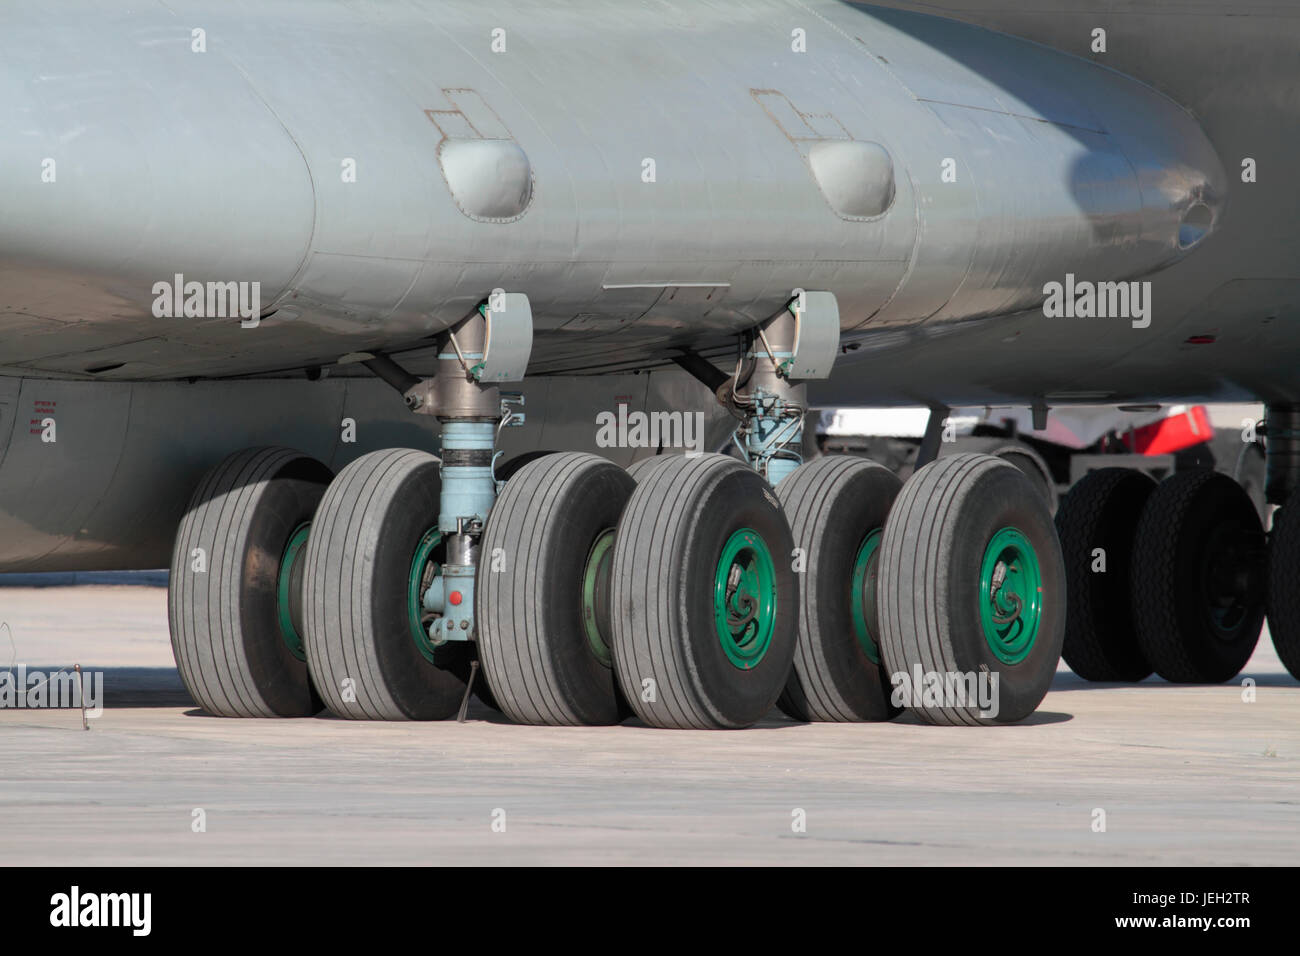 Right main undercarriage of an Ilyushin Il-76 cargo plane, showing twin undercarriage legs with four wheels on each - Stock Image